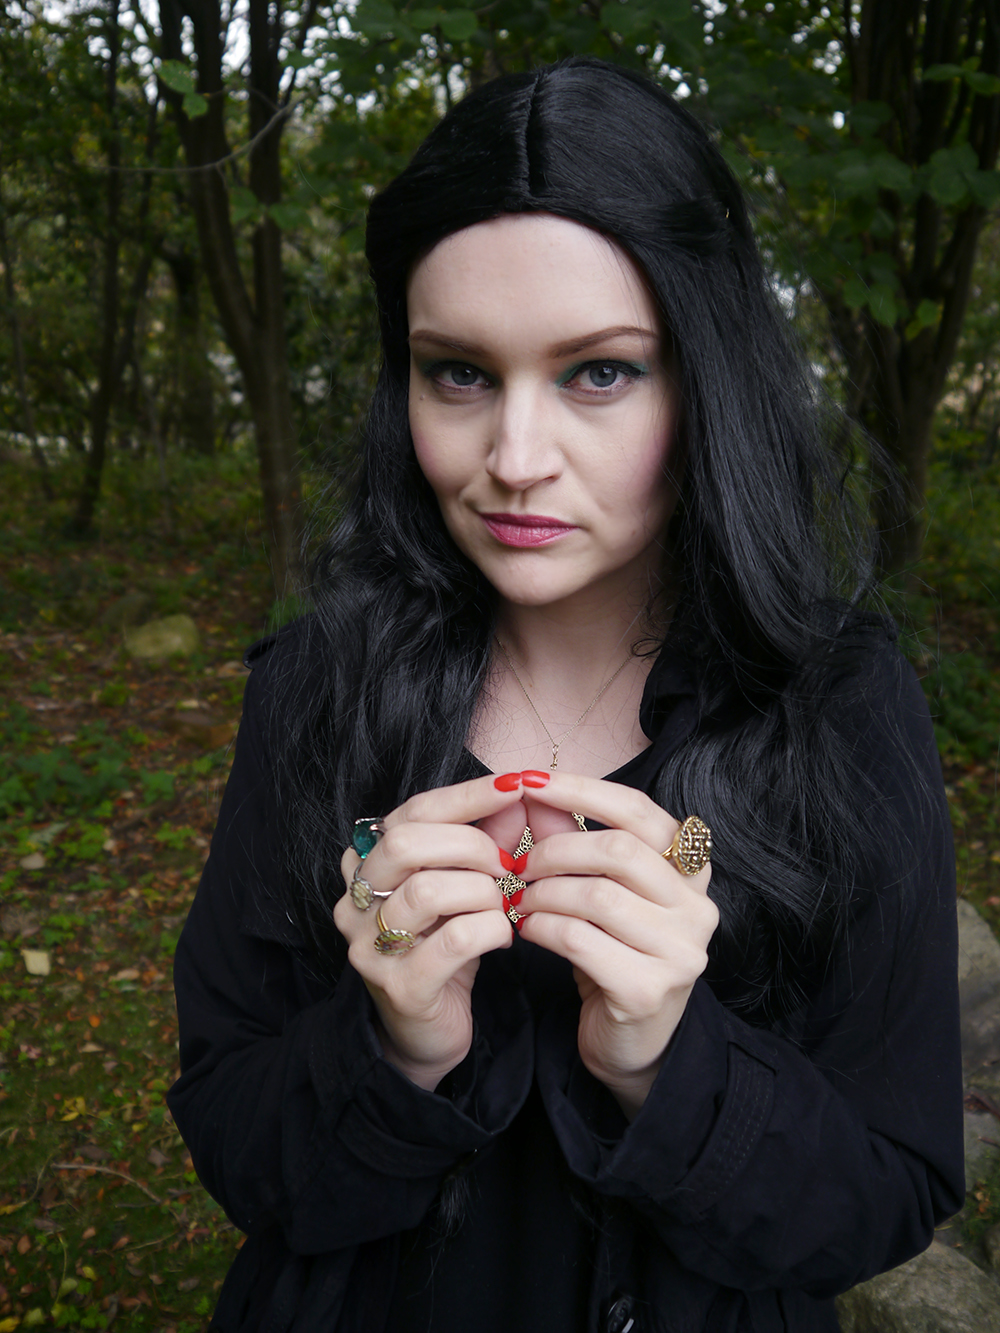 Blogger Kimberly from Wardrobe Conversations dressed in witch Halloween costume as The Love Witch with layered jewellery